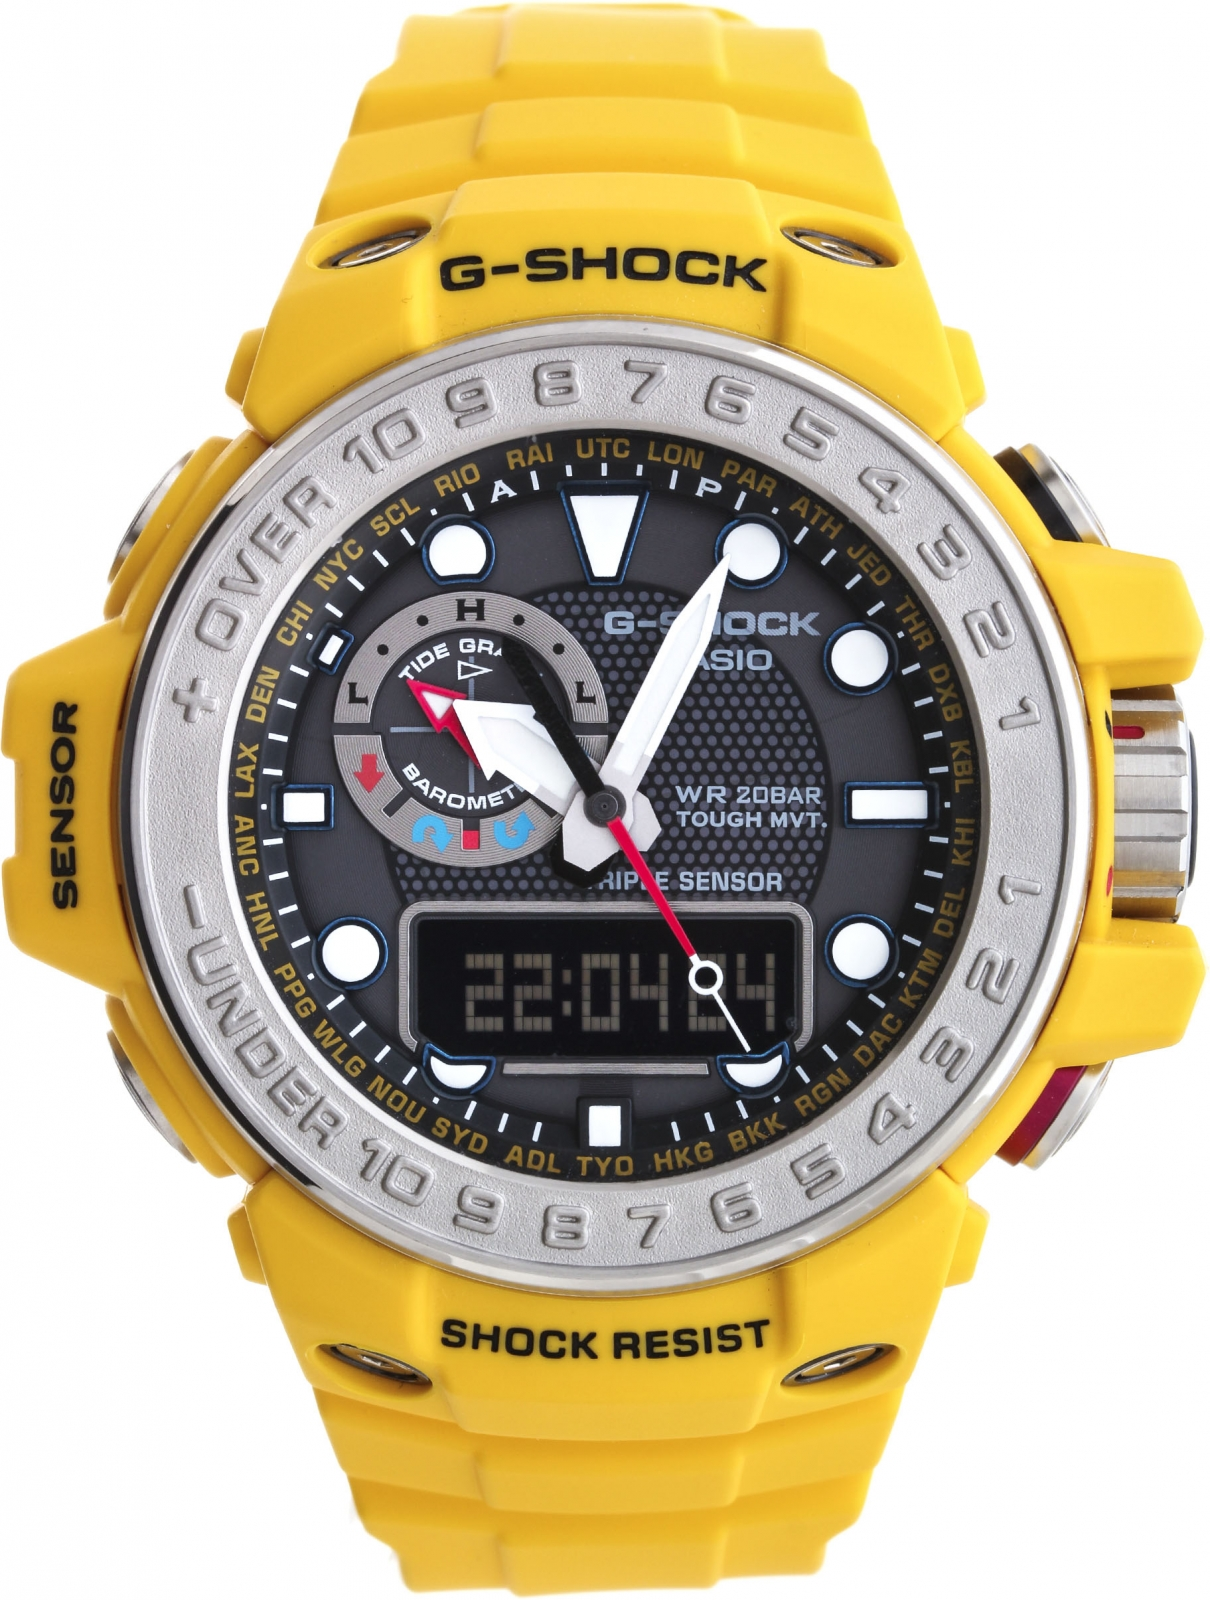 Casio G-shock Gulfmaster GWN-1000-9A casio g shock gulfmaster tough mvt multi band 6 gwn 1000e 8ajf men s japan model